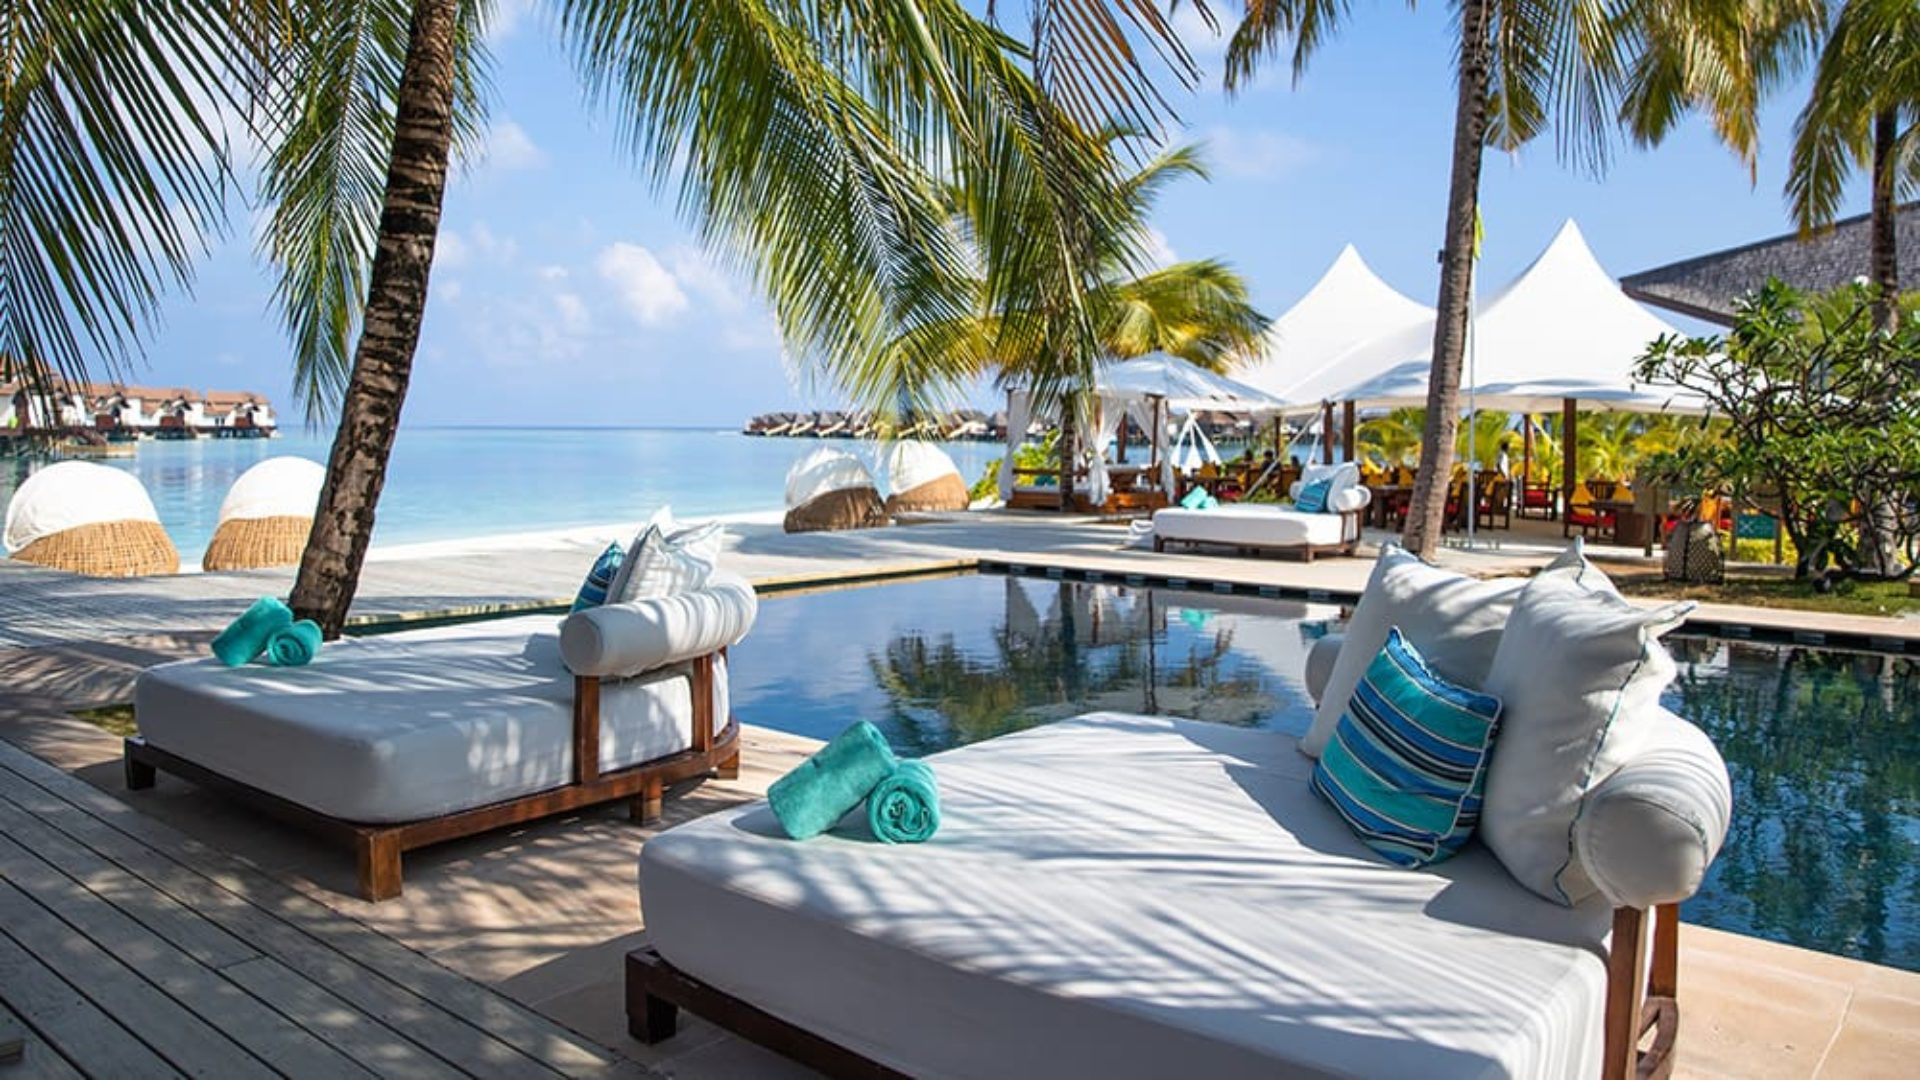 Pool loungers under palm trees at Jumeirah Vittaveli